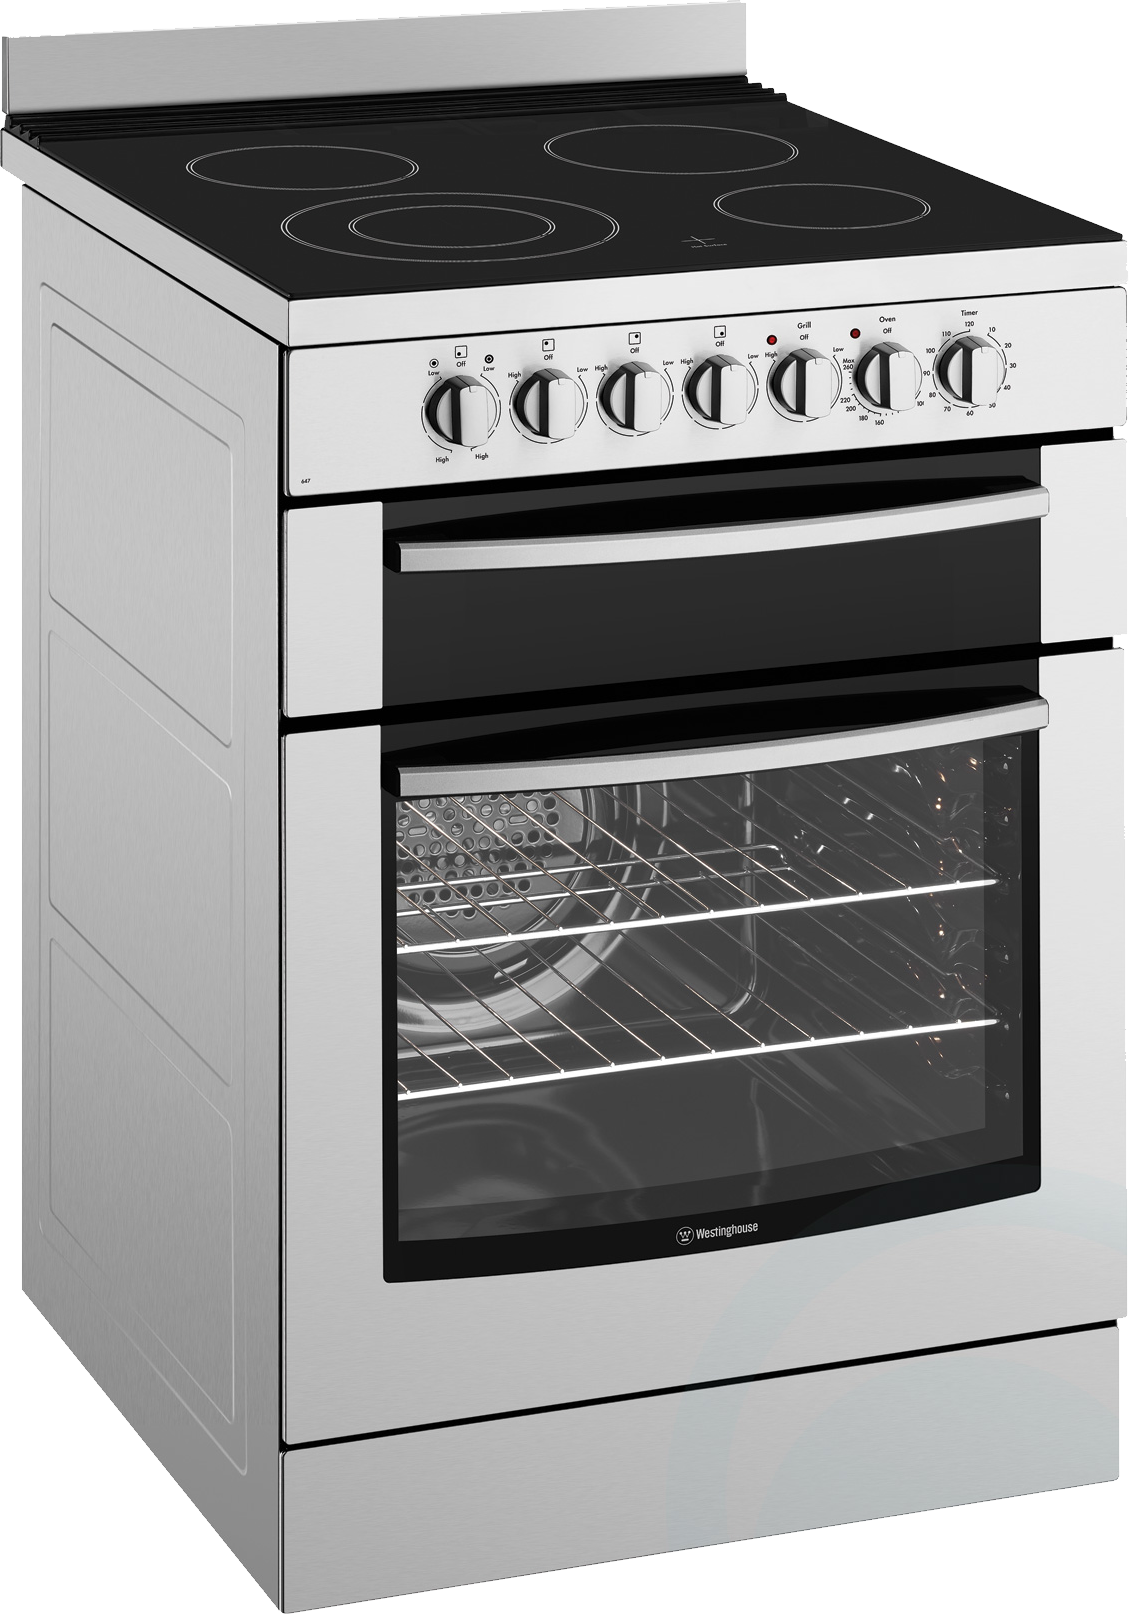 Gas Cooker clipart electric stove Stove PNG electric Electric PNG